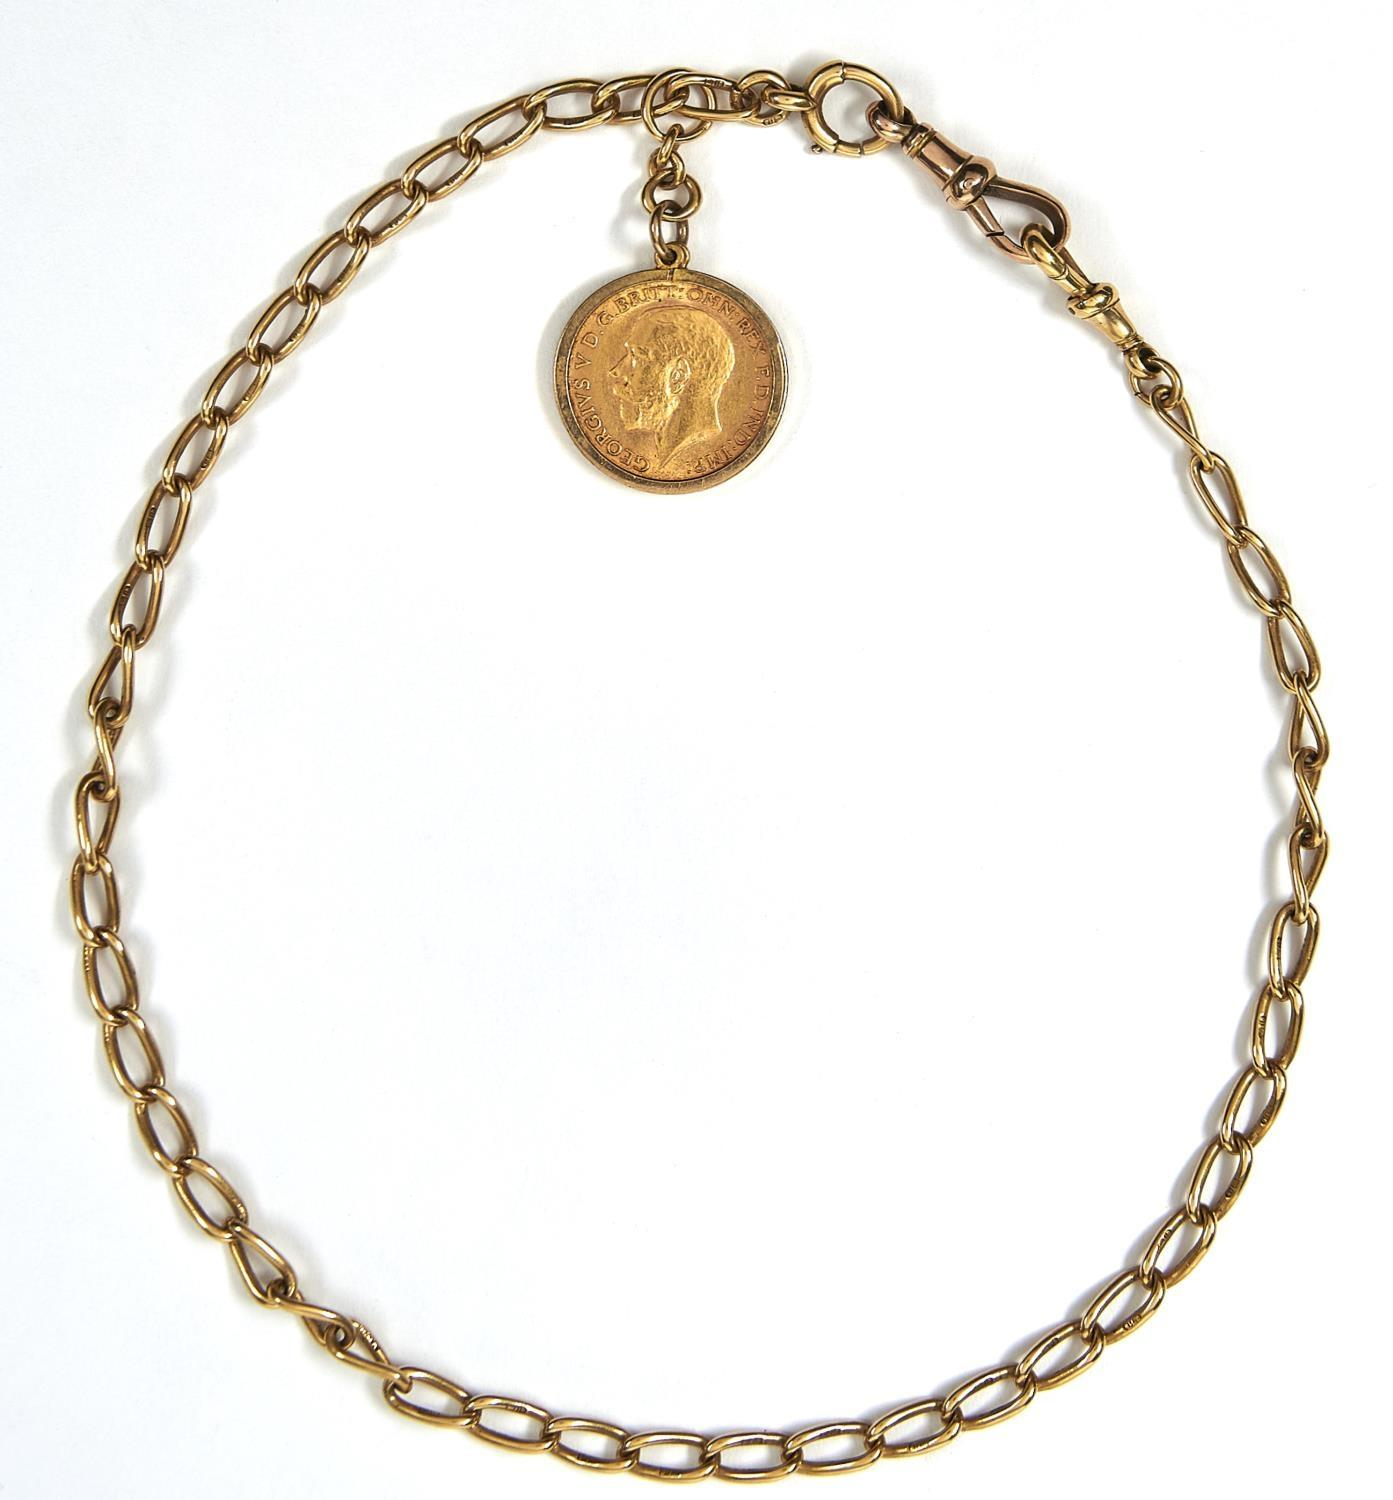 GOLD COIN. HALF SOVEREIGN 1913 MOUNTED IN 9CT GOLD, ON AN 18CT GOLD WATCH CHAIN, EARLY 20TH C,